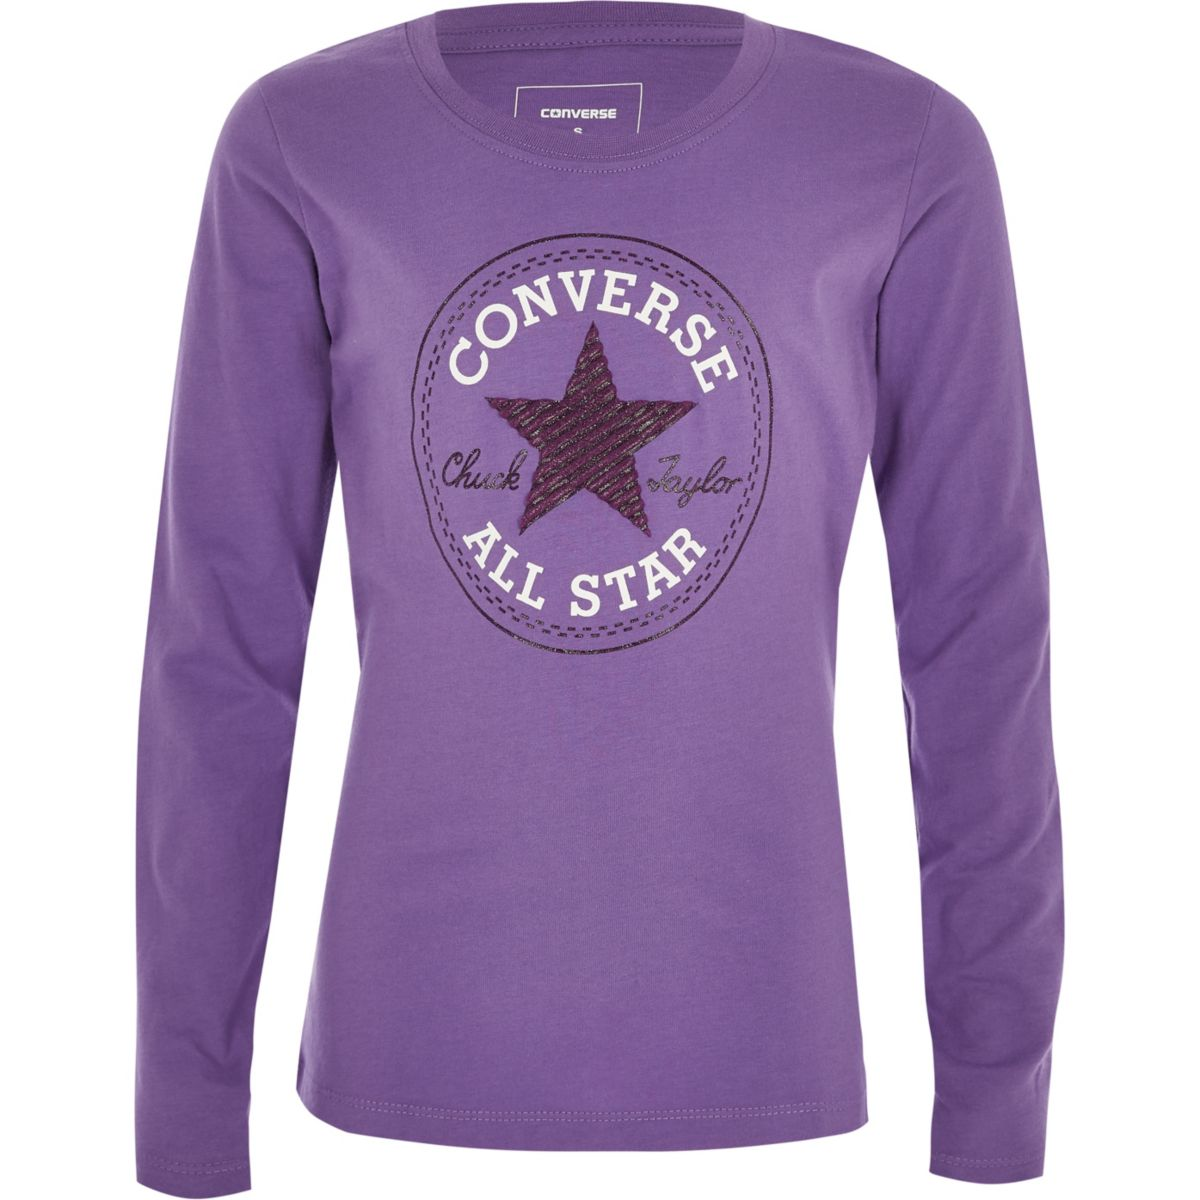 Girls Converse purple long sleeve T-shirt